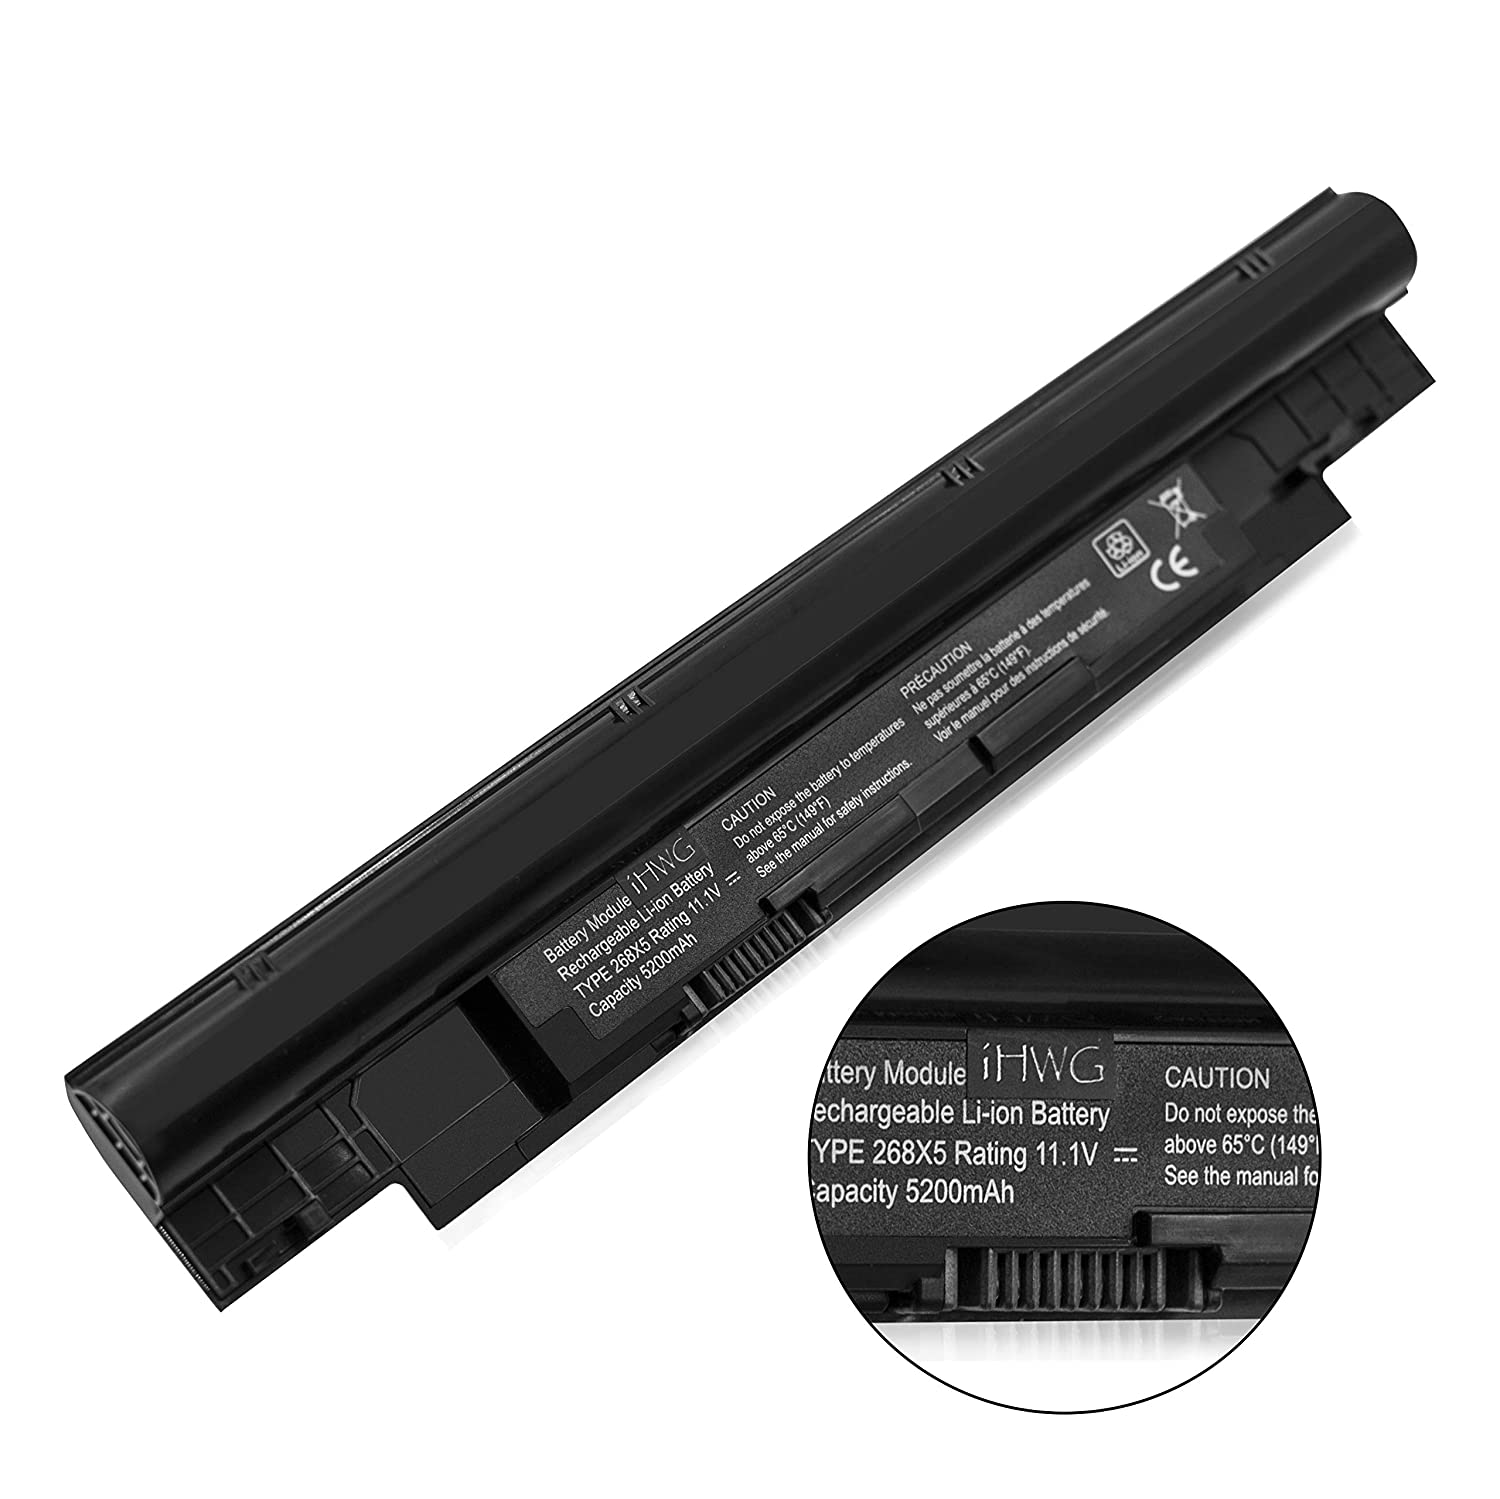 Laptop Accessories Accessories gaixample.org 6-Cell 11.1V 5200Mah ...